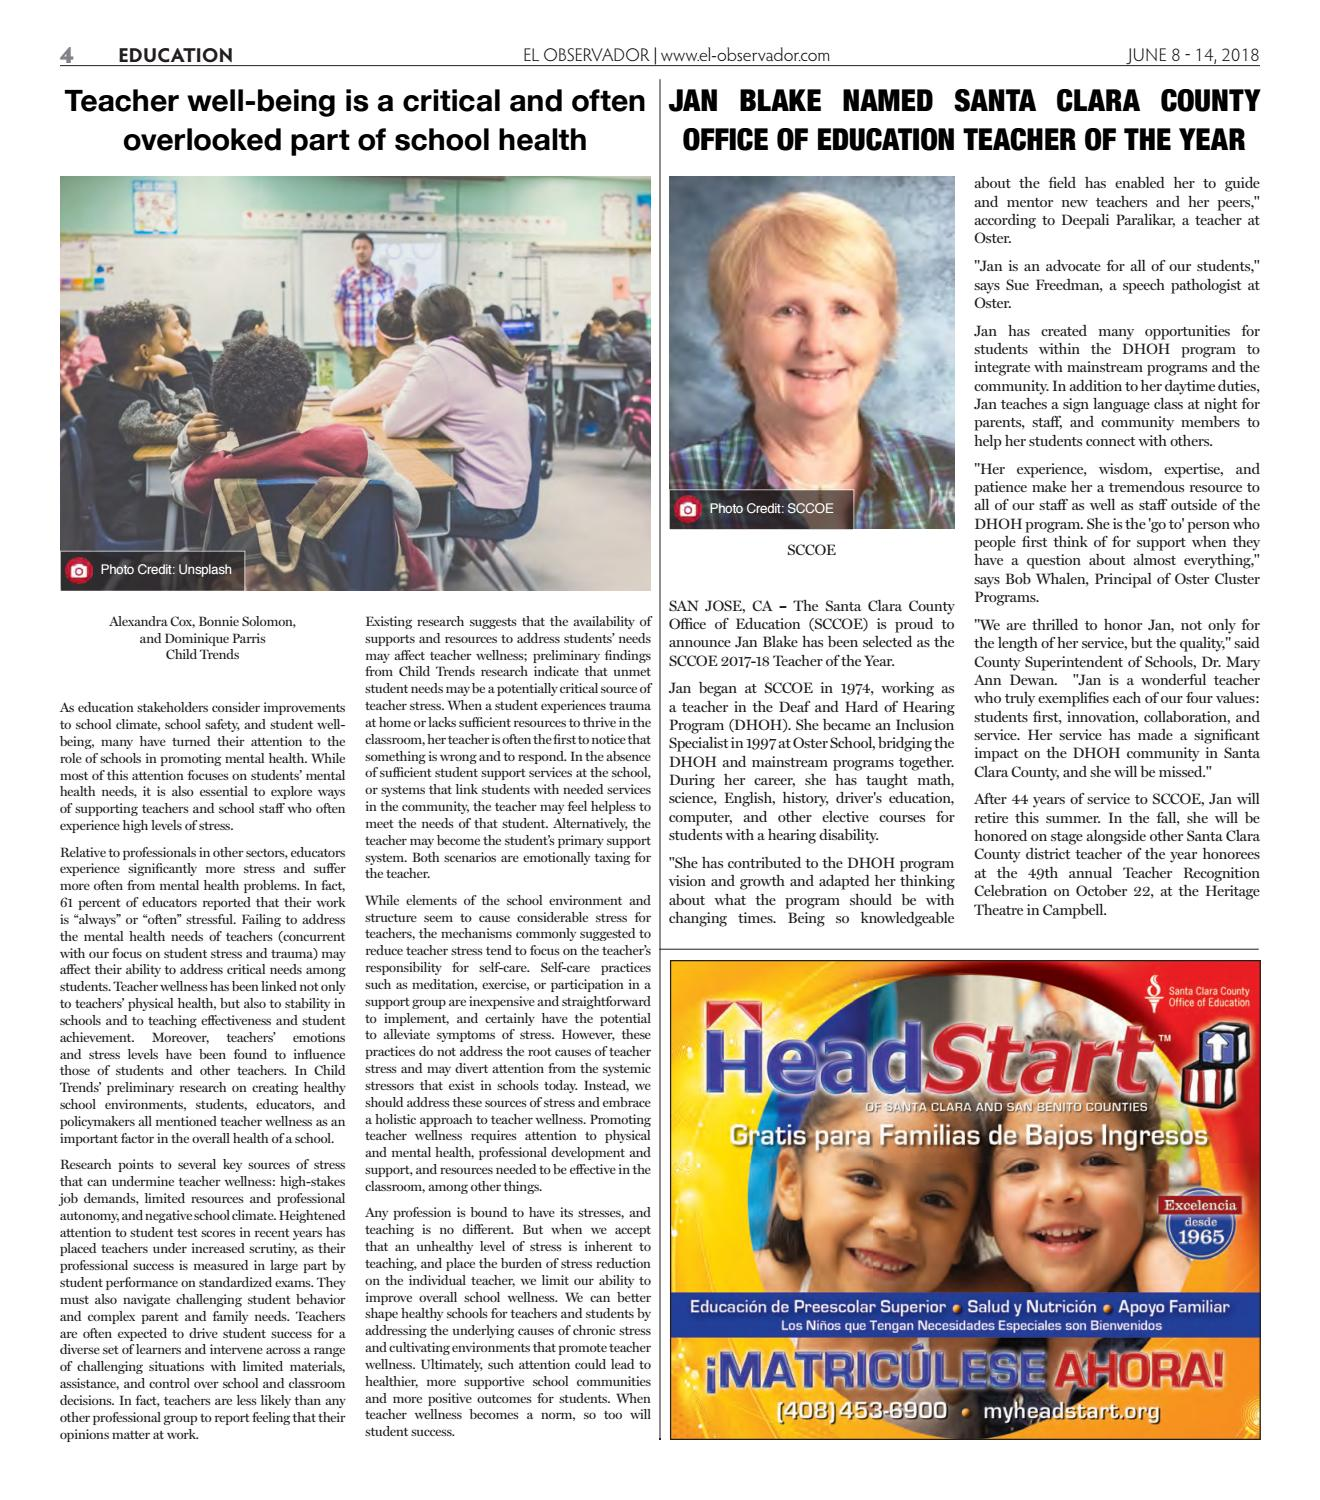 Student Stress Is Educations Overlooked >> El Observador 06 08 By Angelica Rossi Issuu